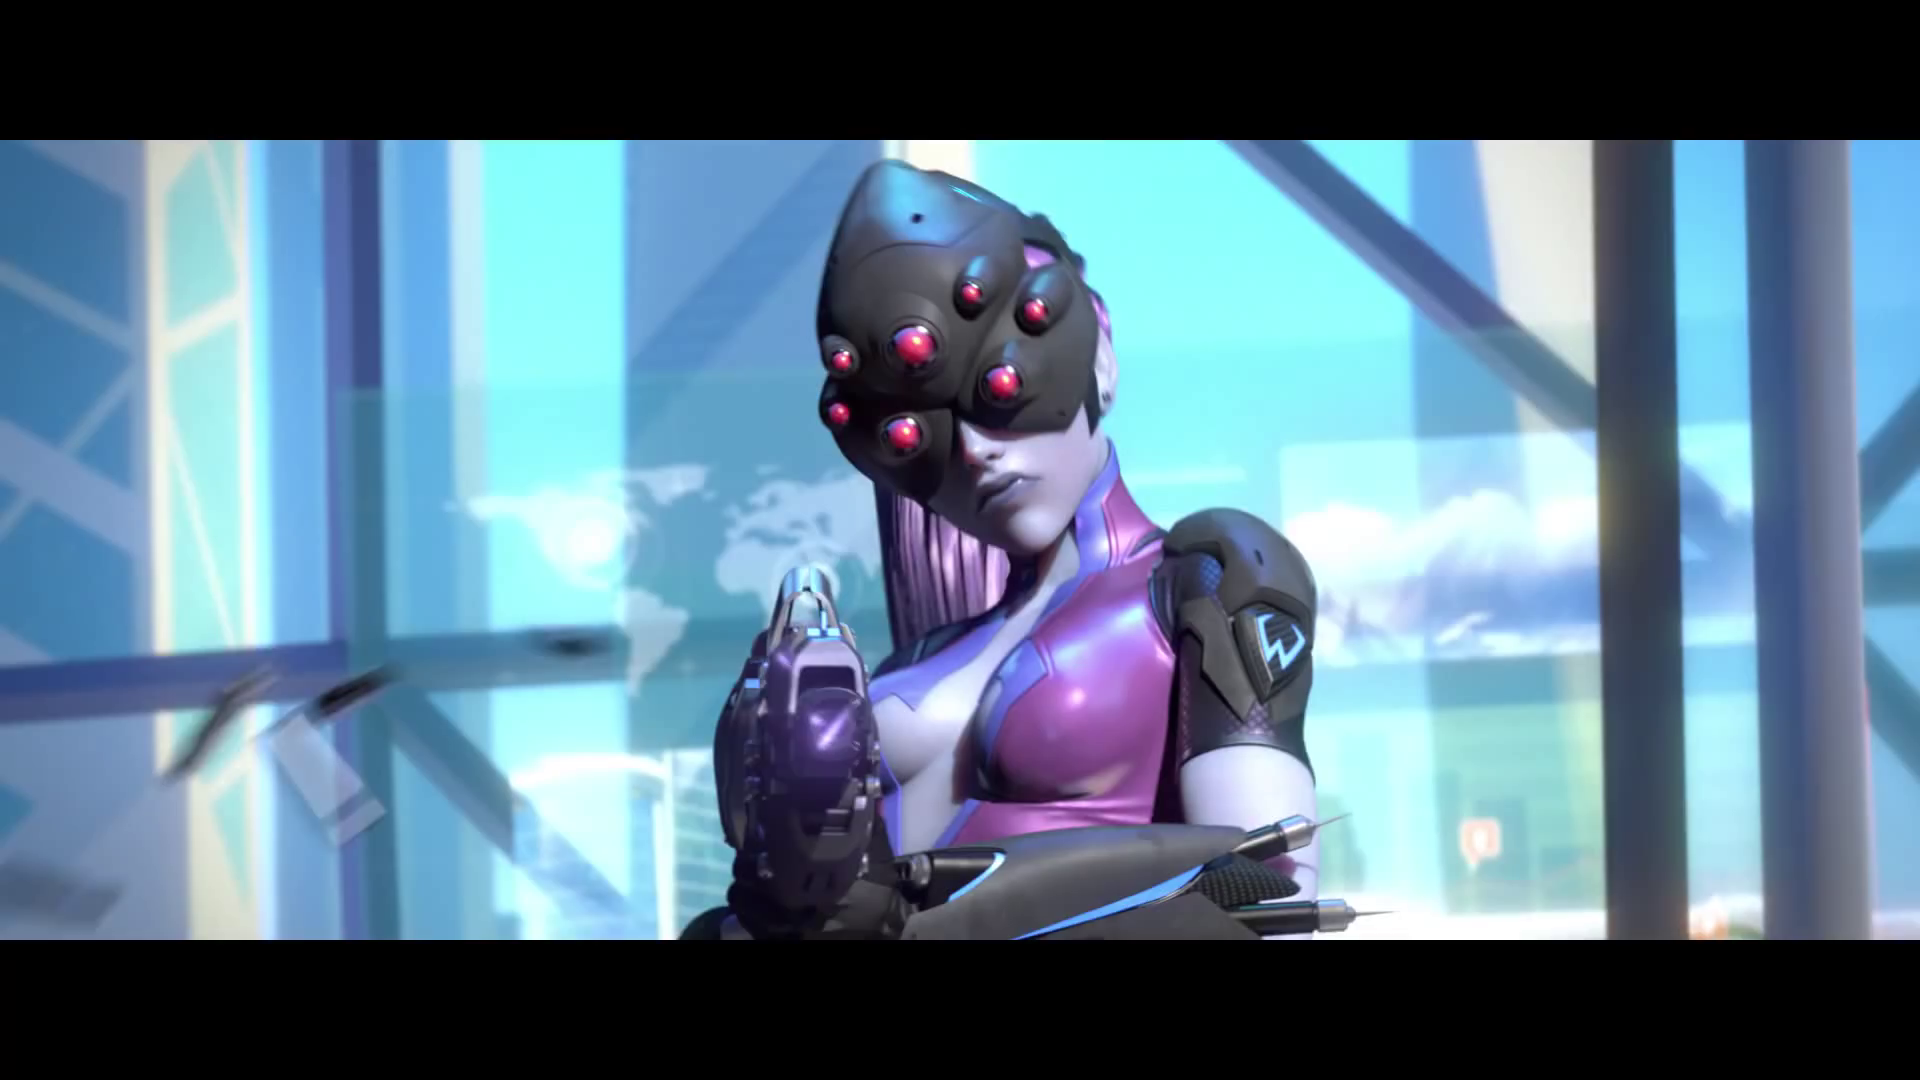 widowmaker overwatch wallpaper 1920x1080 - photo #9